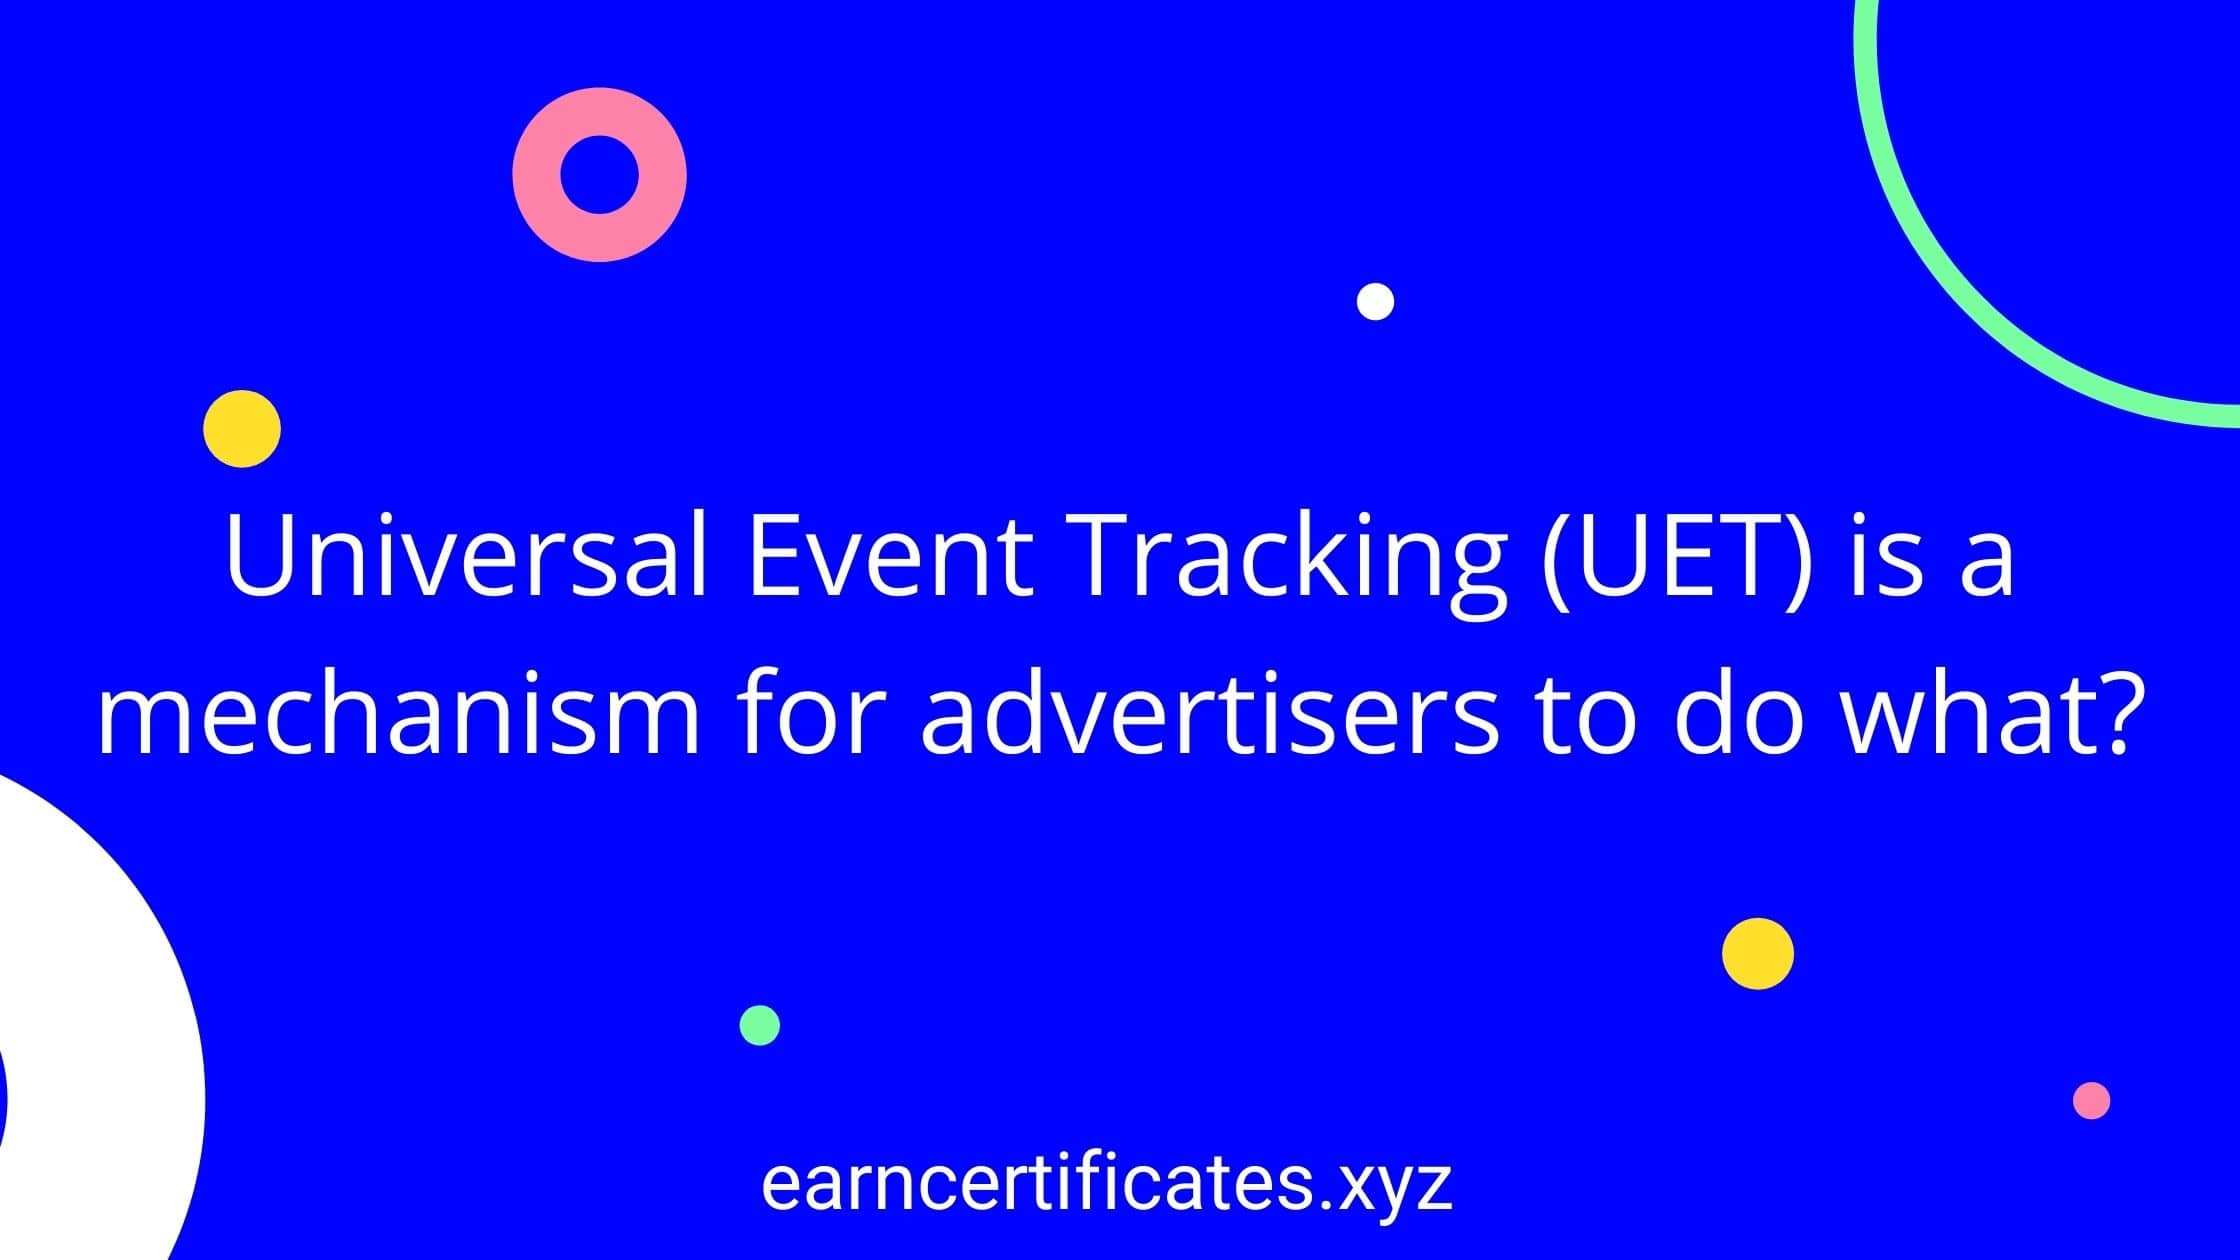 Universal Event Tracking (UET) is a mechanism for advertisers to do what?